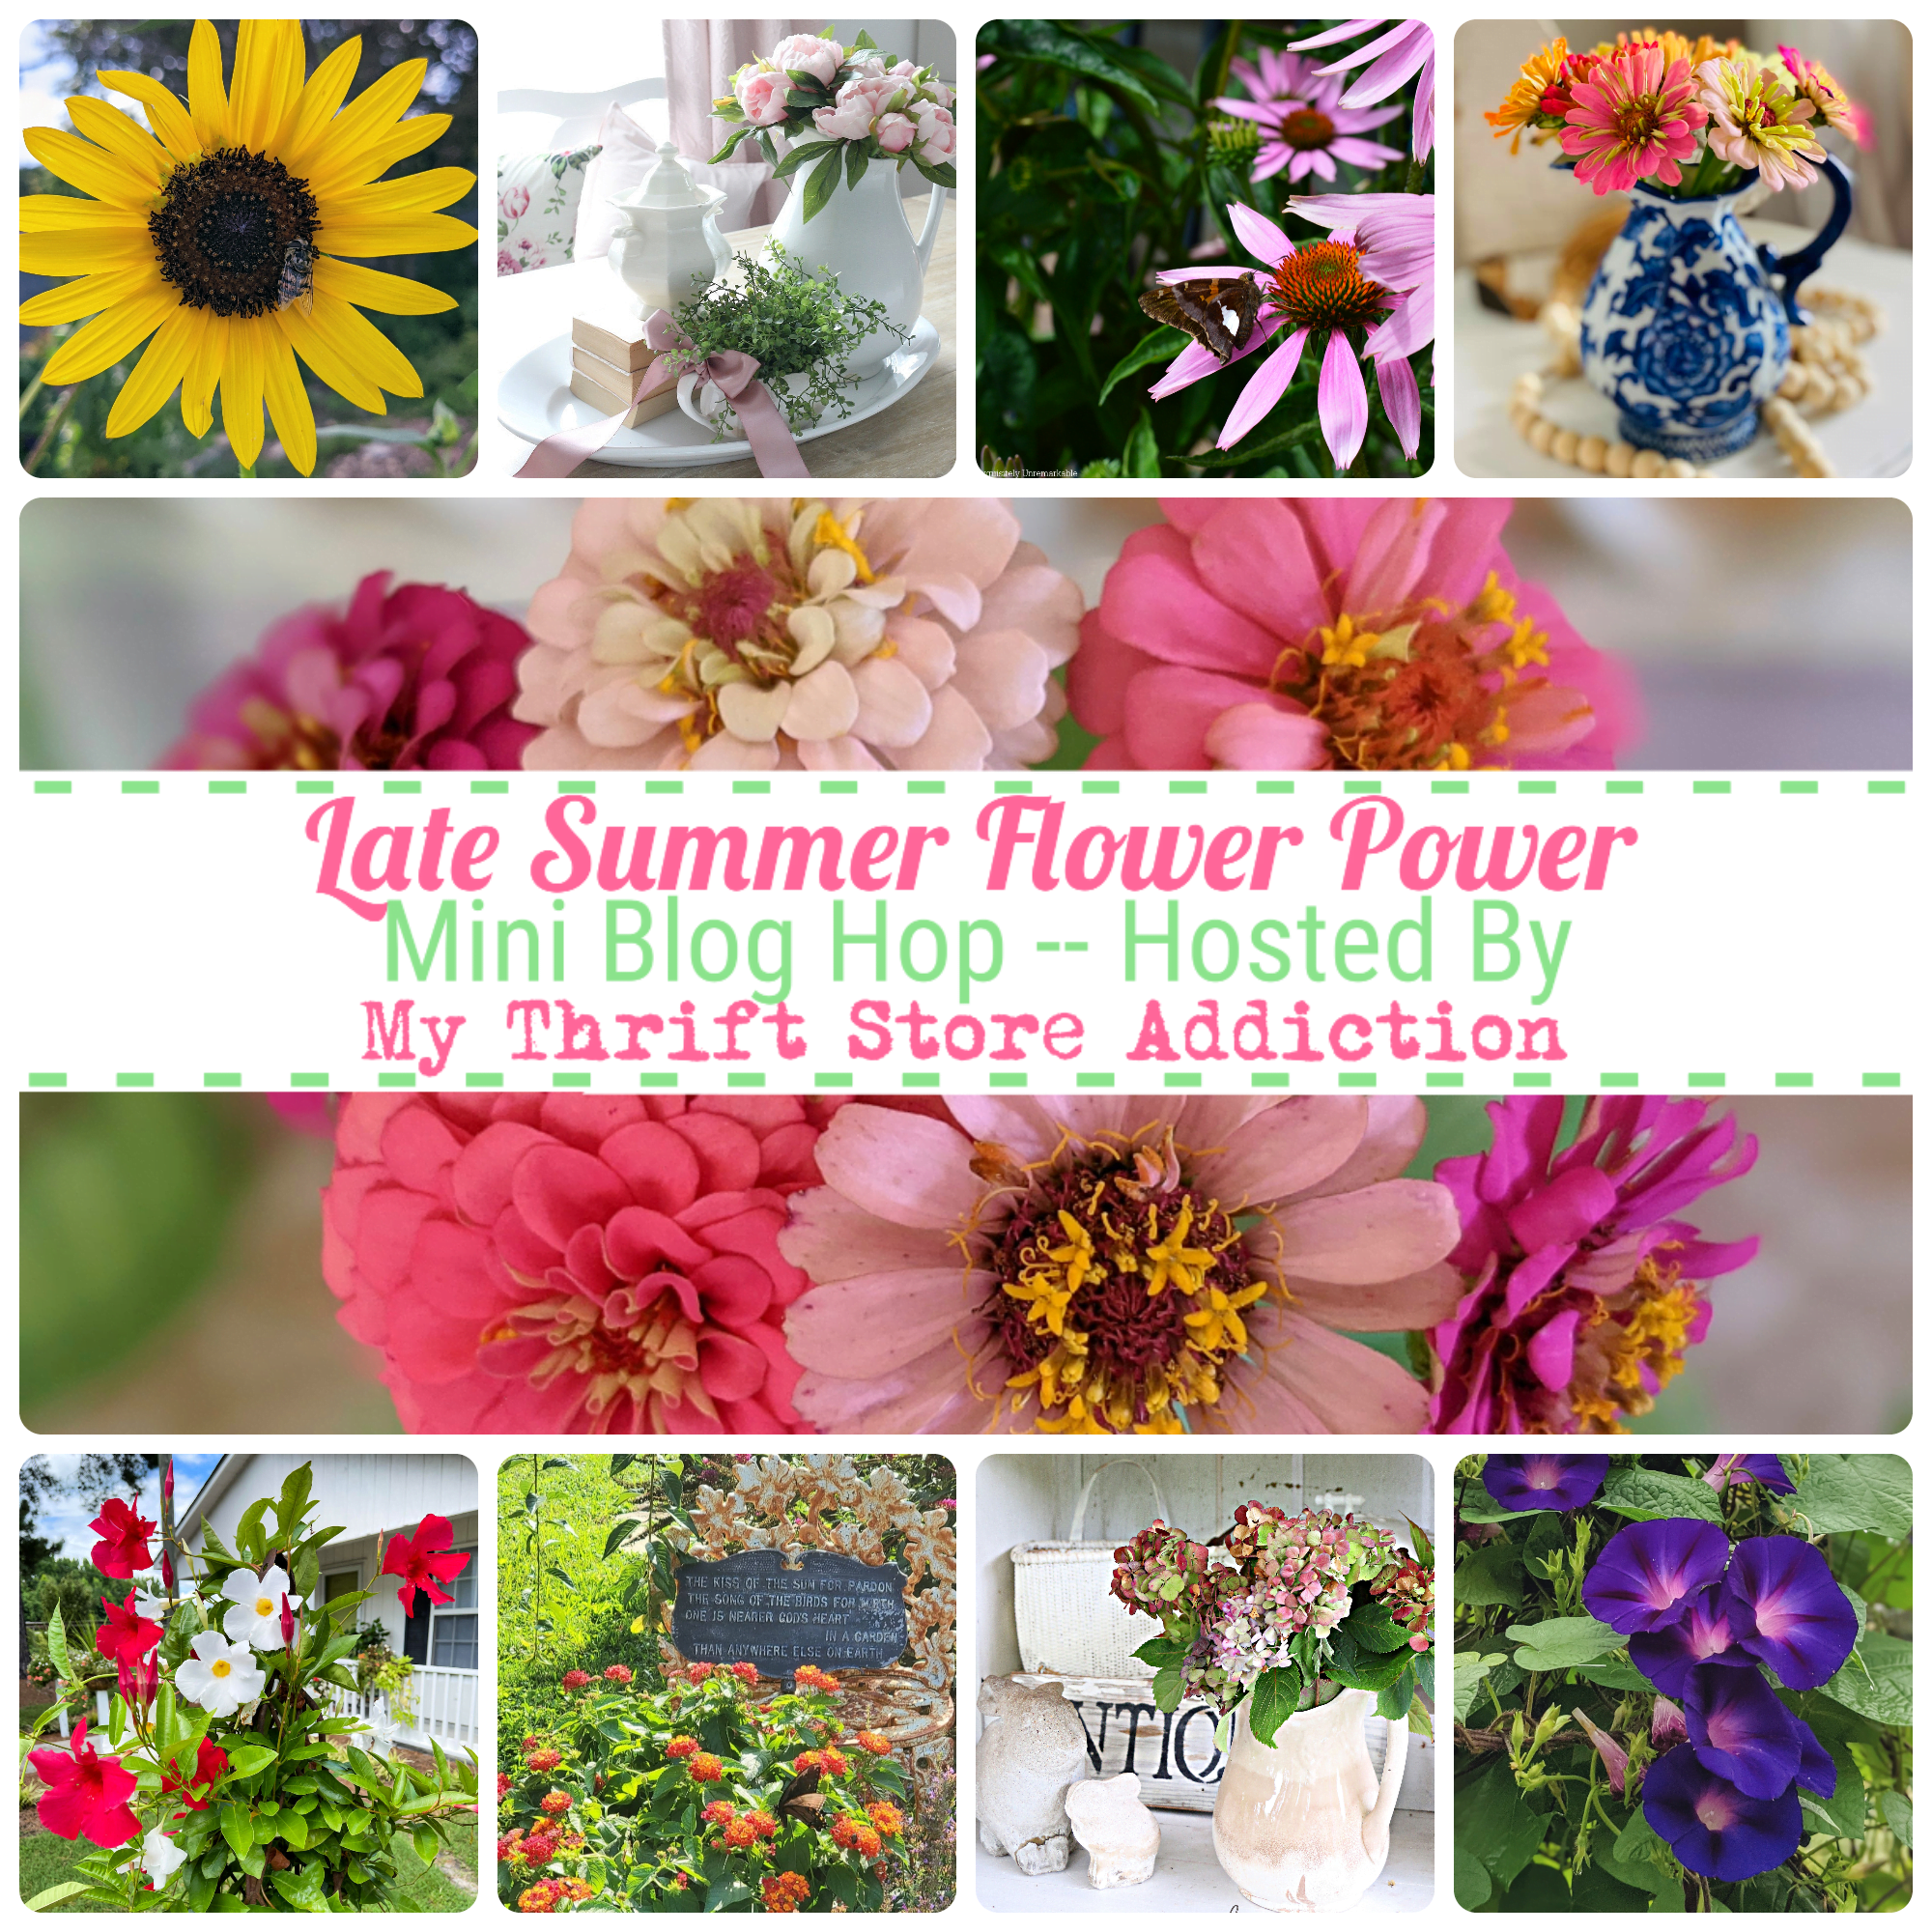 Late Summer Flower Power graphic